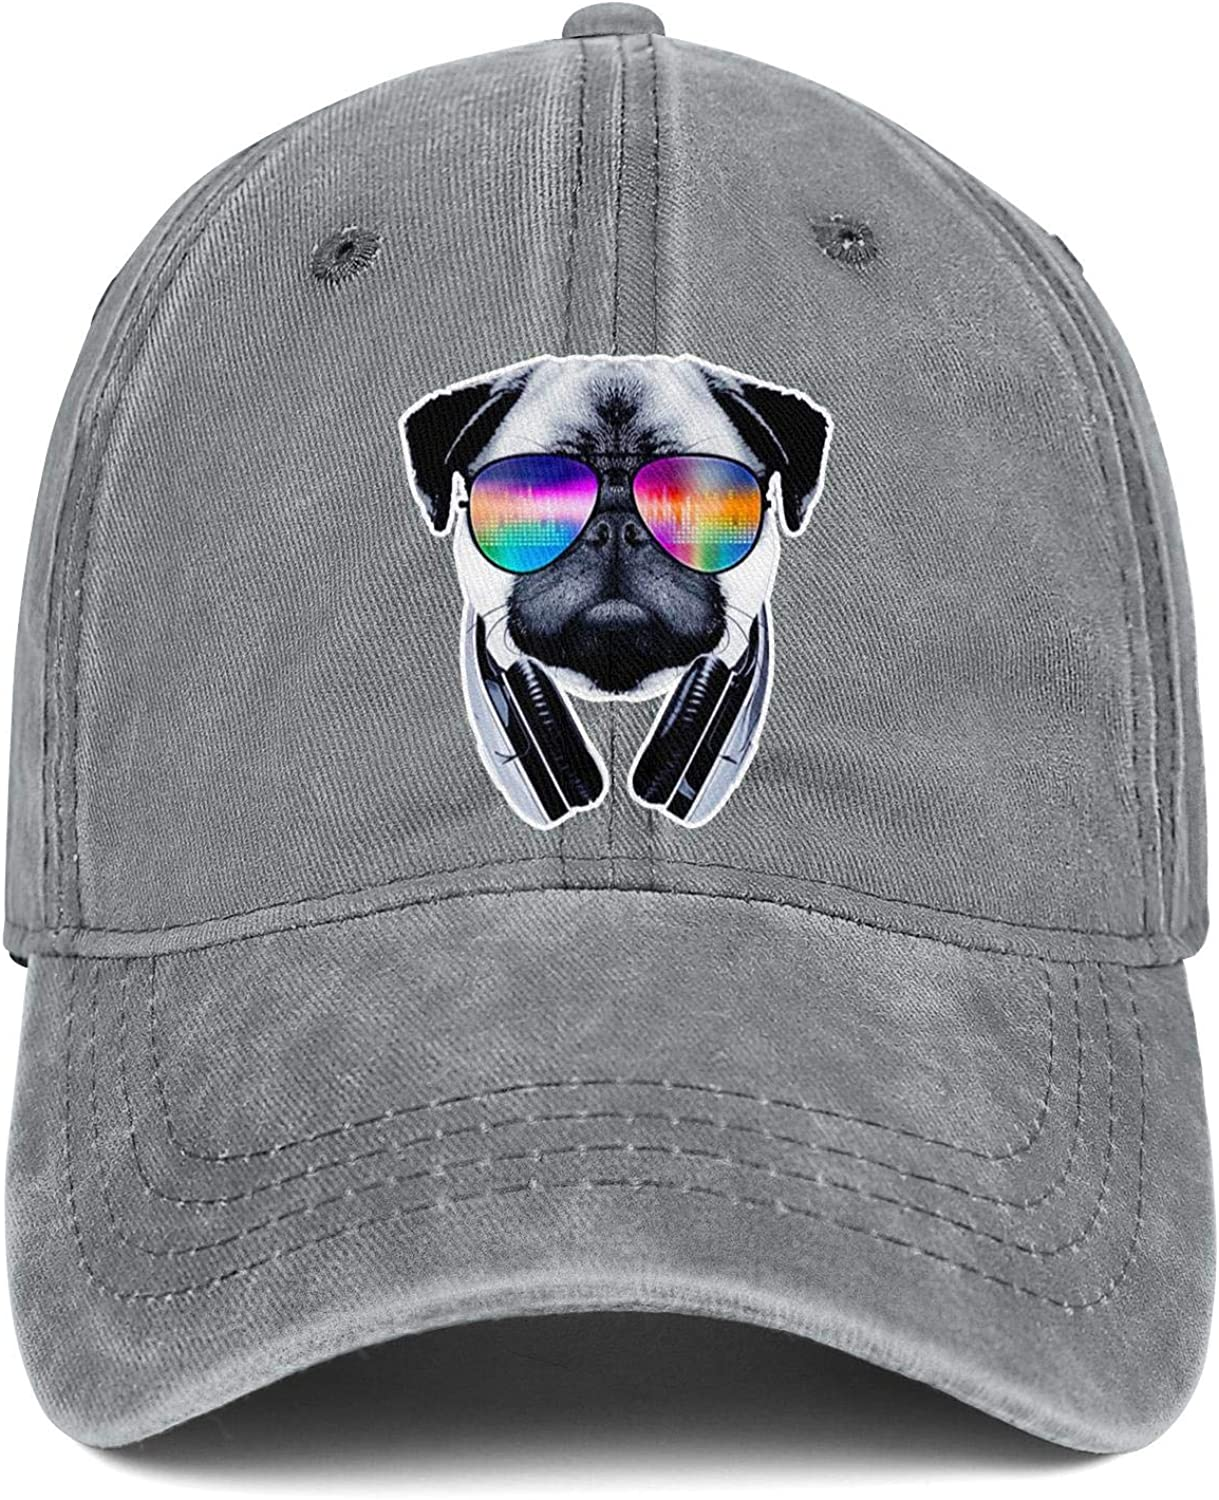 Pugs Sunglasses Cool Music Puppies Unisex Baseball Cap Ultra Thin Sport Baseball Caps Adjustable Trucker Caps Dad-Hat